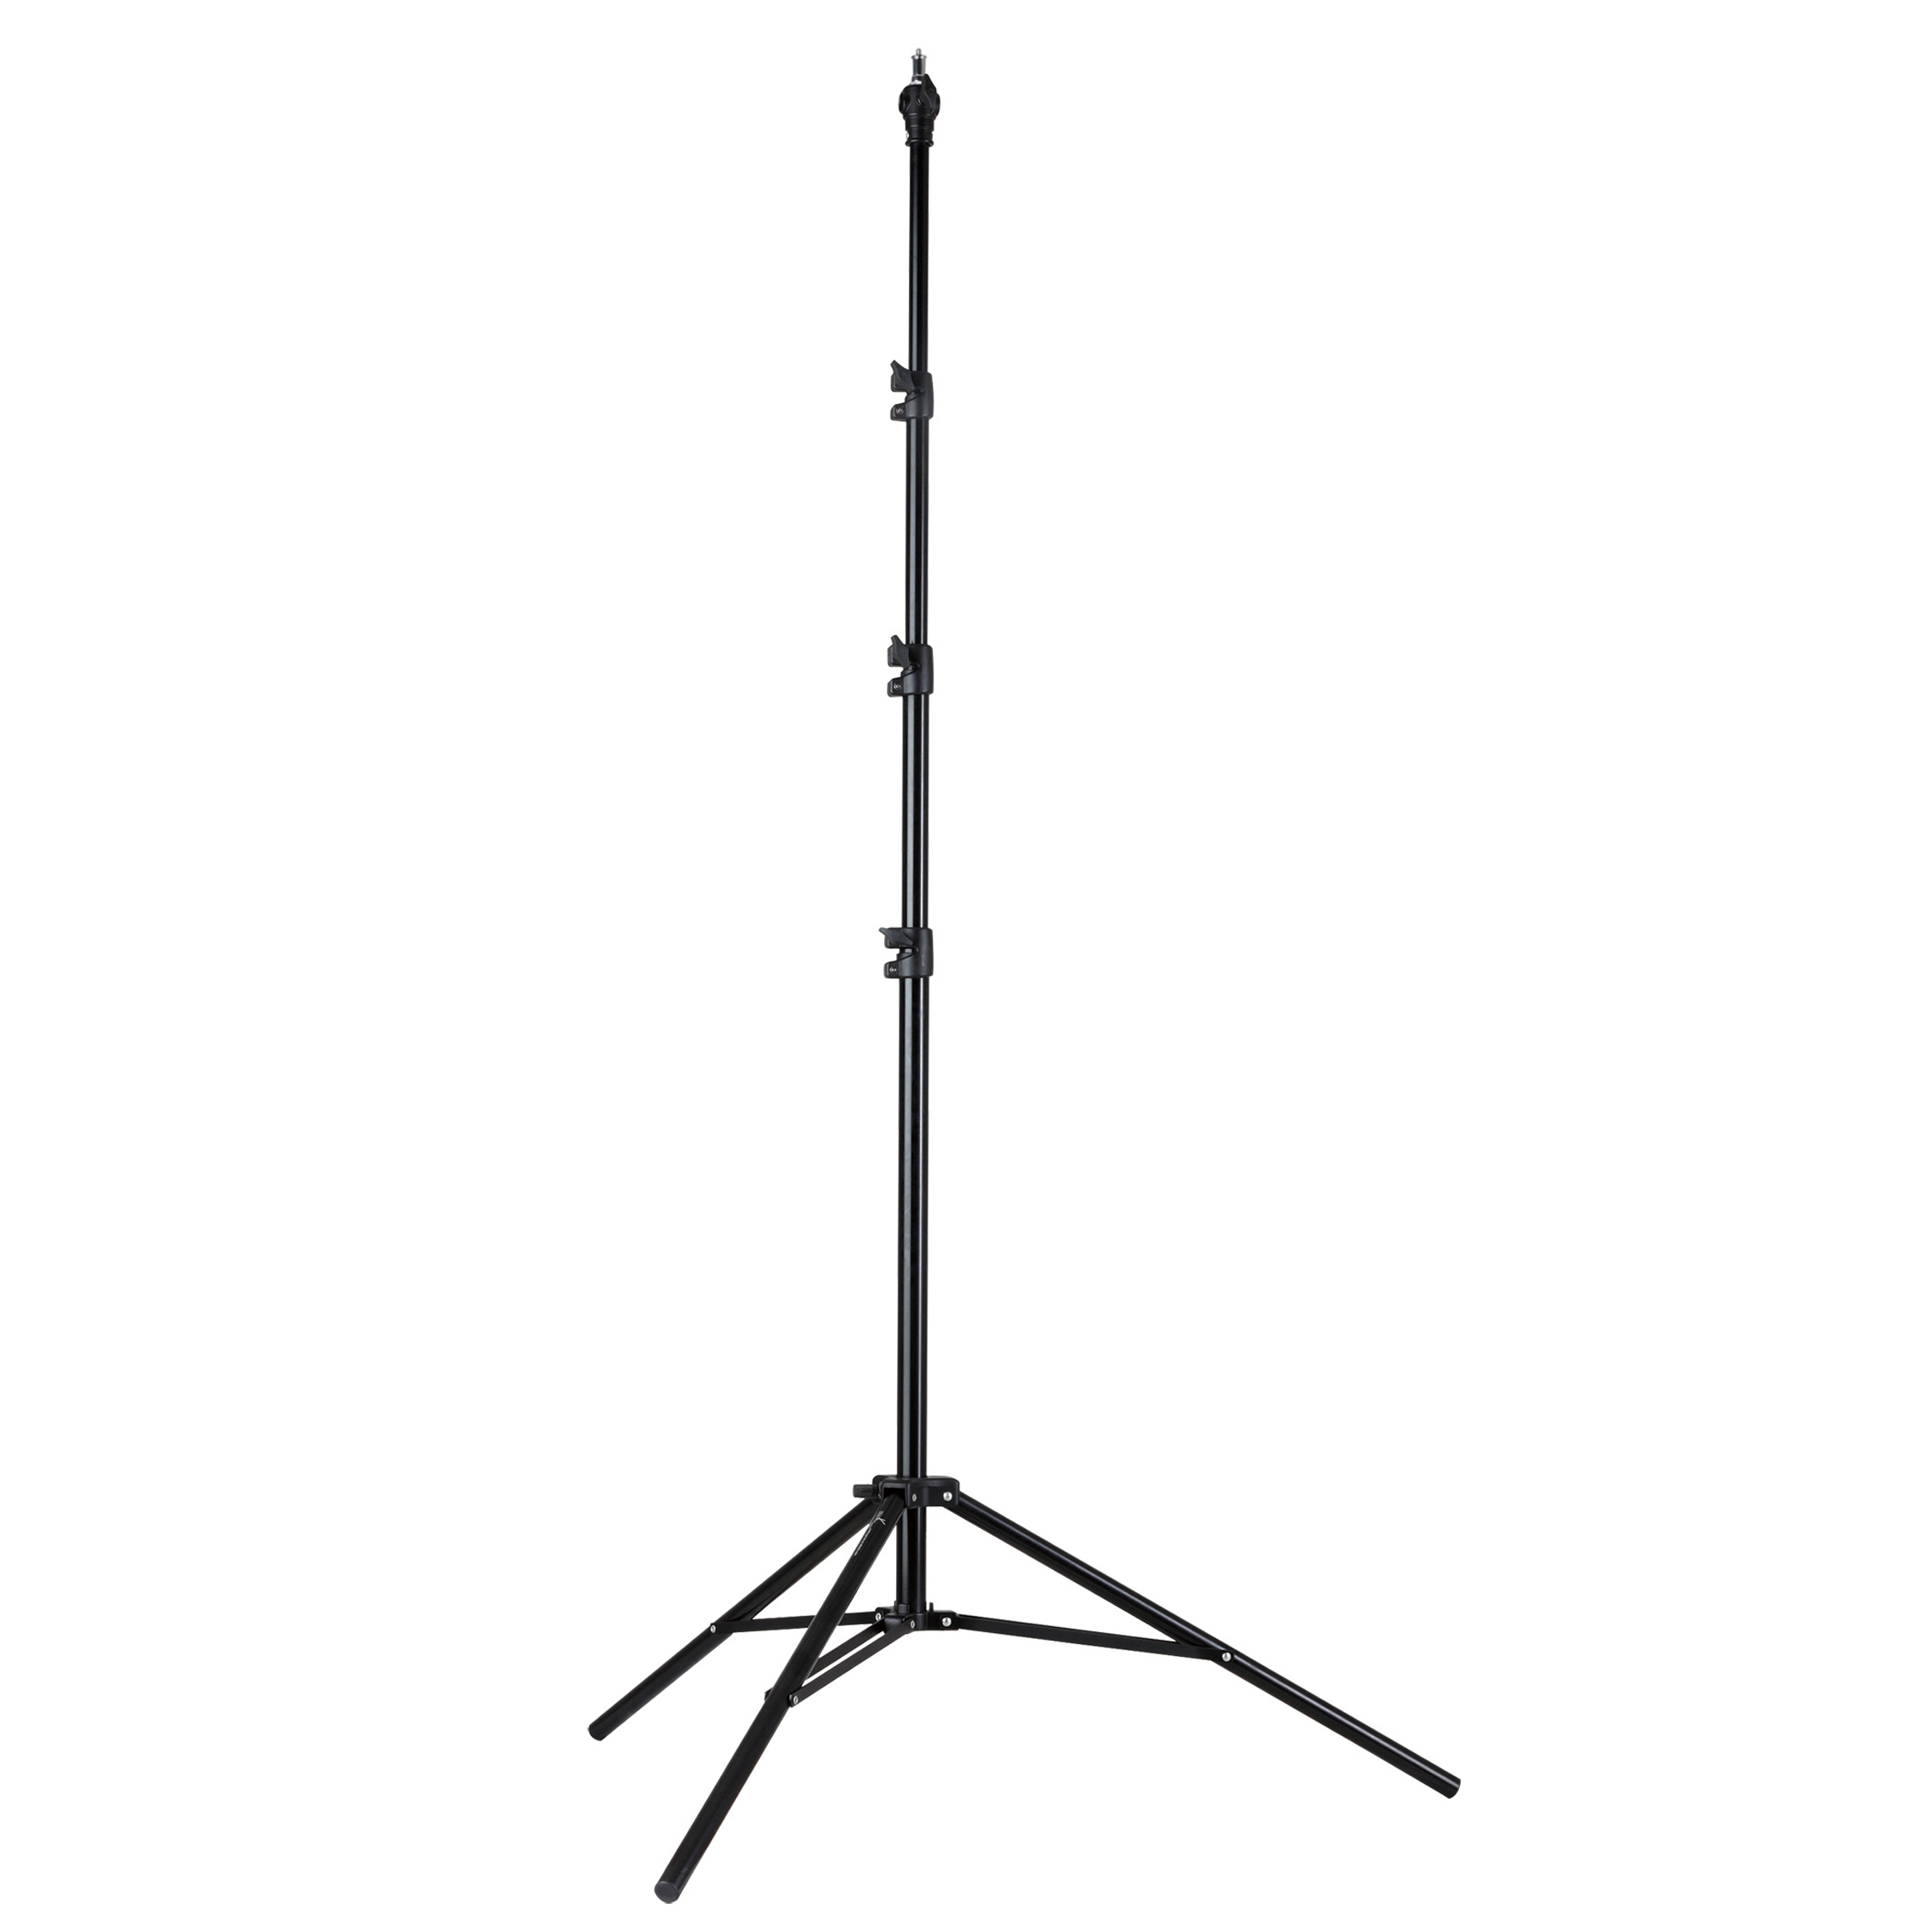 L-2800FP: Meking Basic Light Stand with Air Cushion